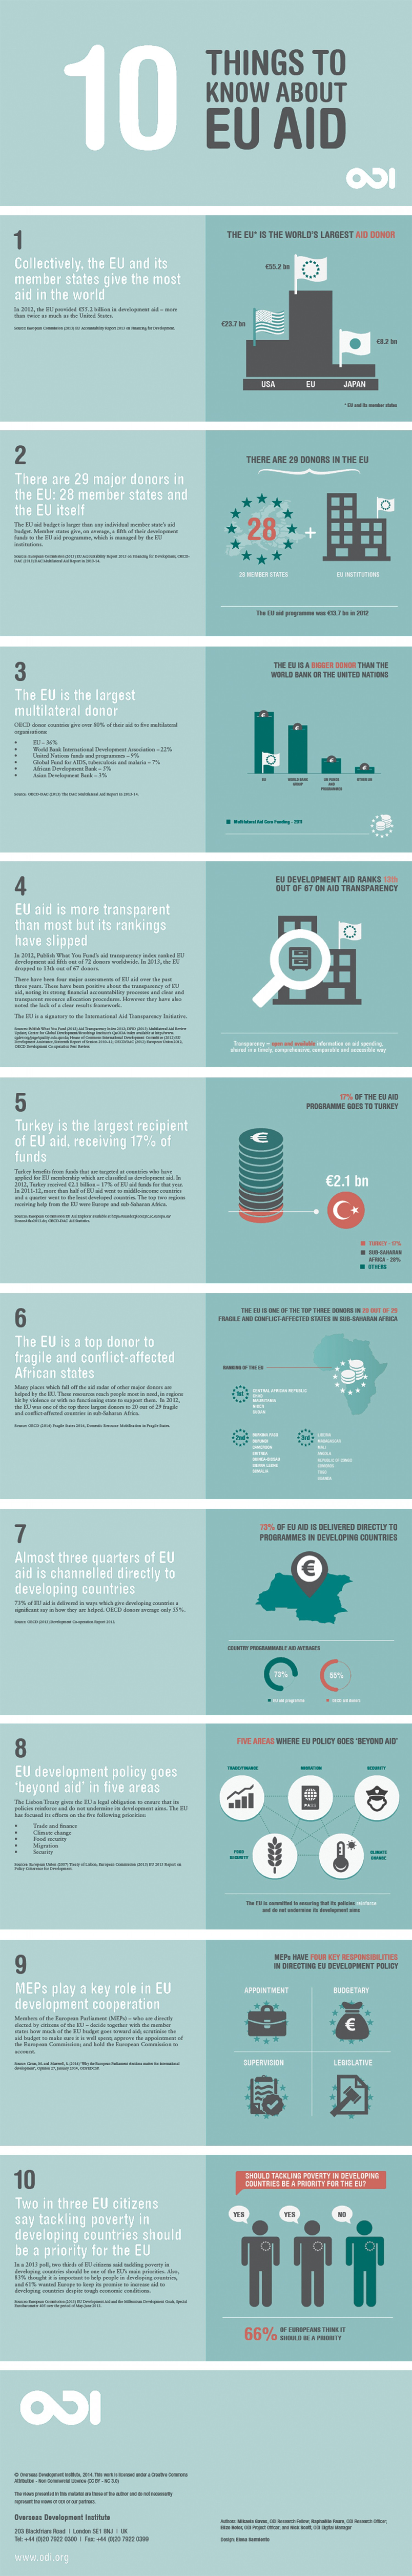 10-things-to-know-about-eu-aid-thumbnail_537c8f5720e02_w1500